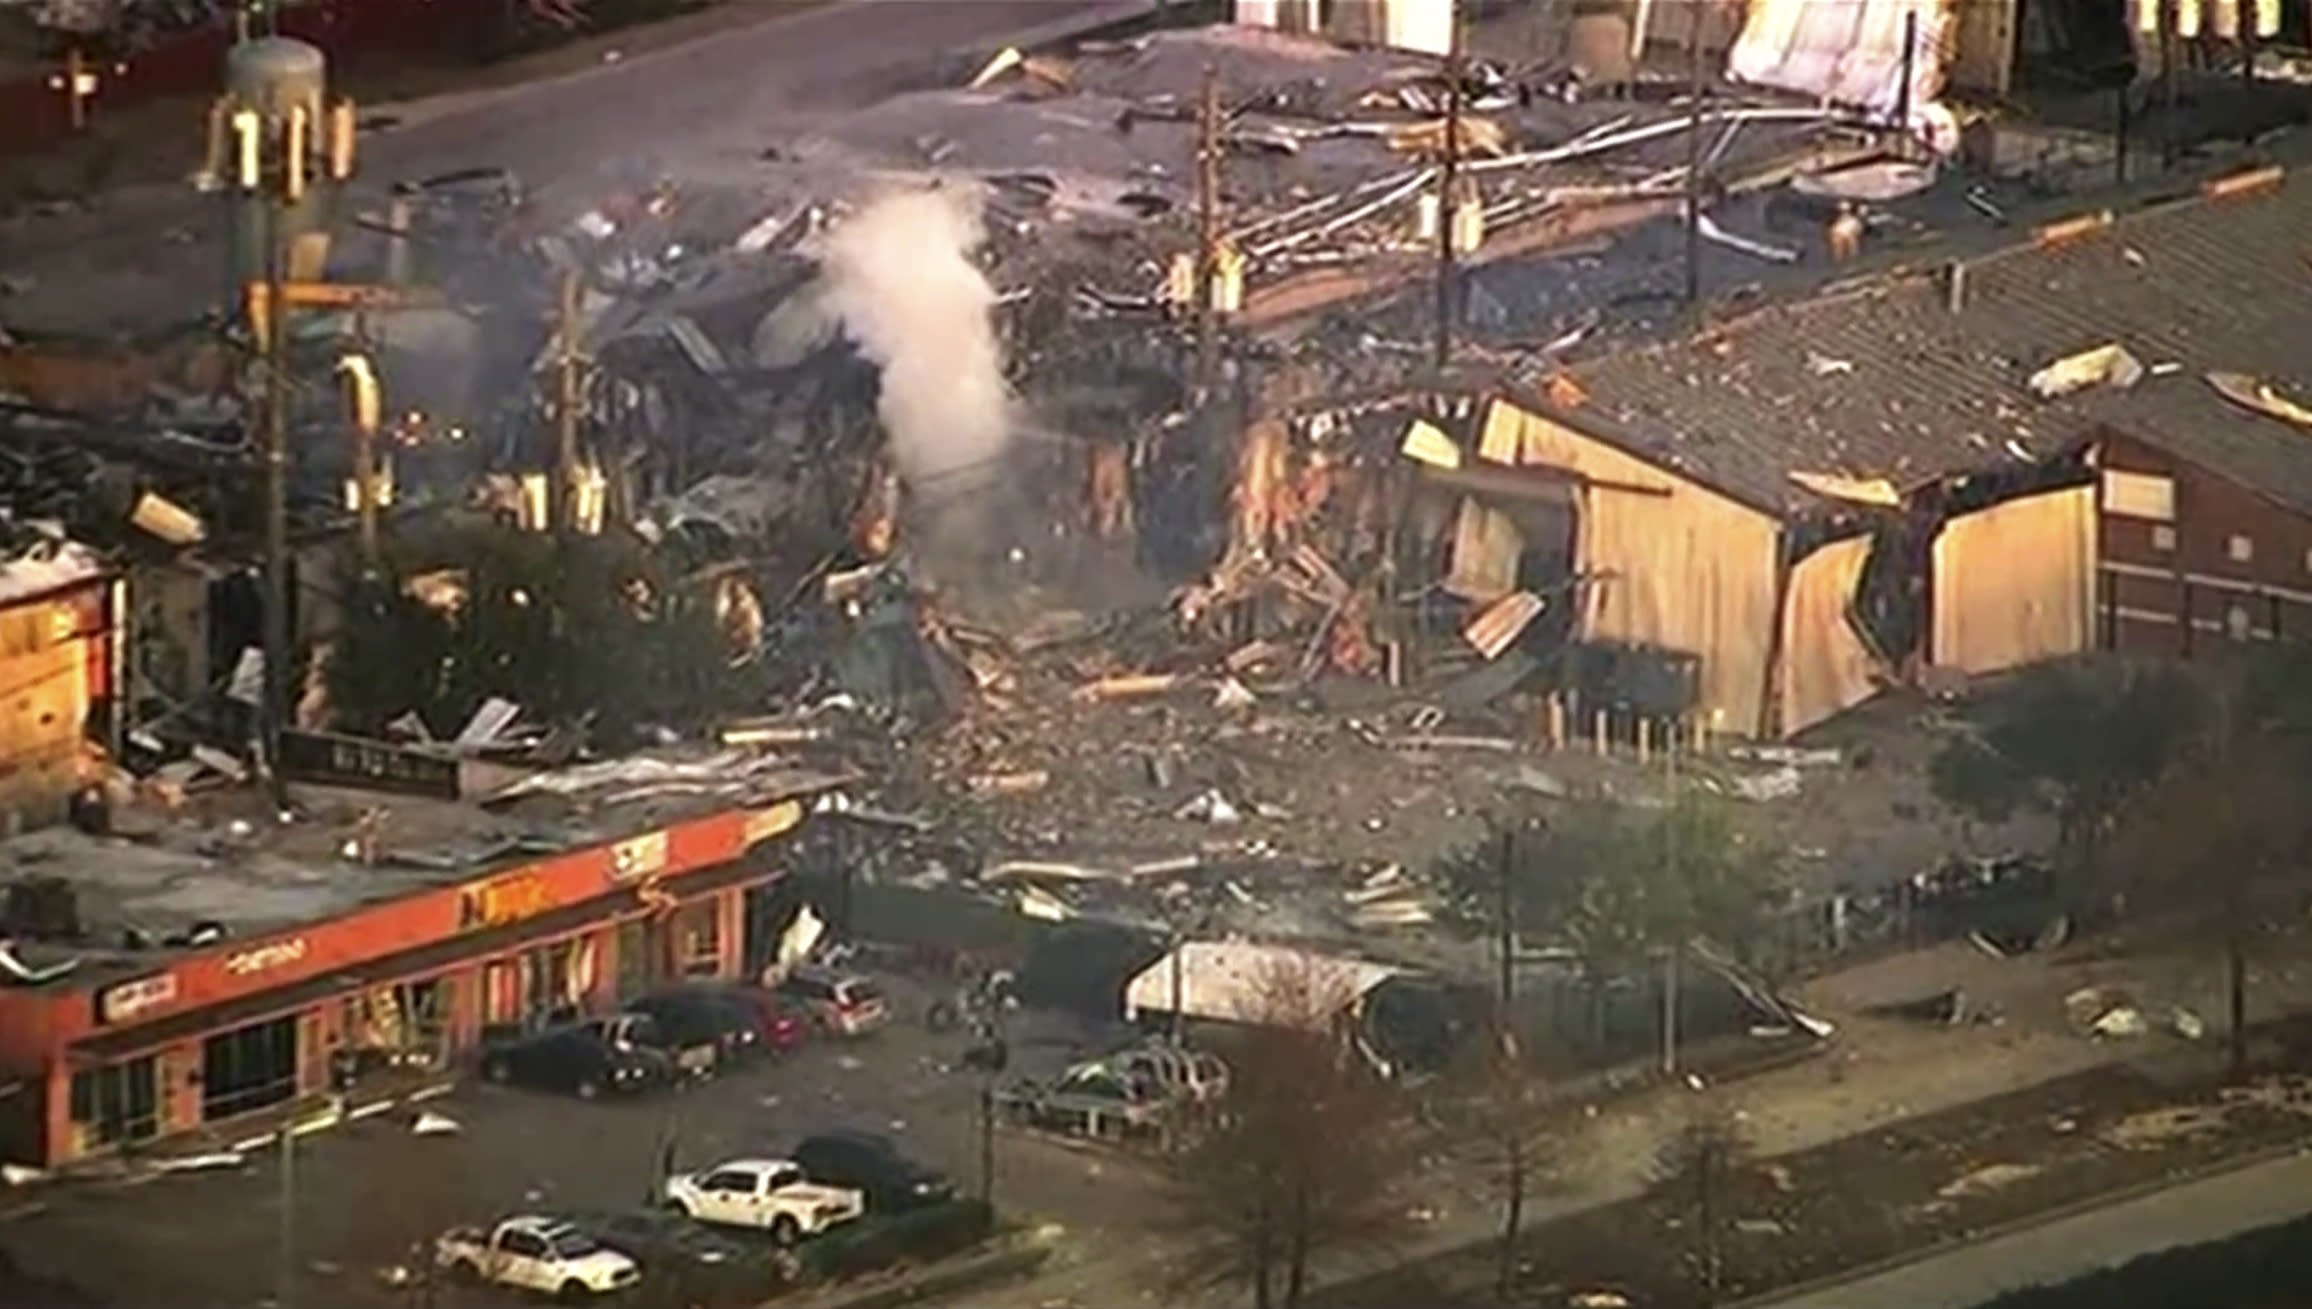 This aerial photo taken from video provided by KTRK-TV shows damage to buildings after an explosion in Houston on Friday, Jan. 24, 2020. A large explosion left rubble scattered in the area, damaged nearby homes and was felt for miles away. A fire continues to burn and people have been told to avoid the area. (KTRK-TV via AP)